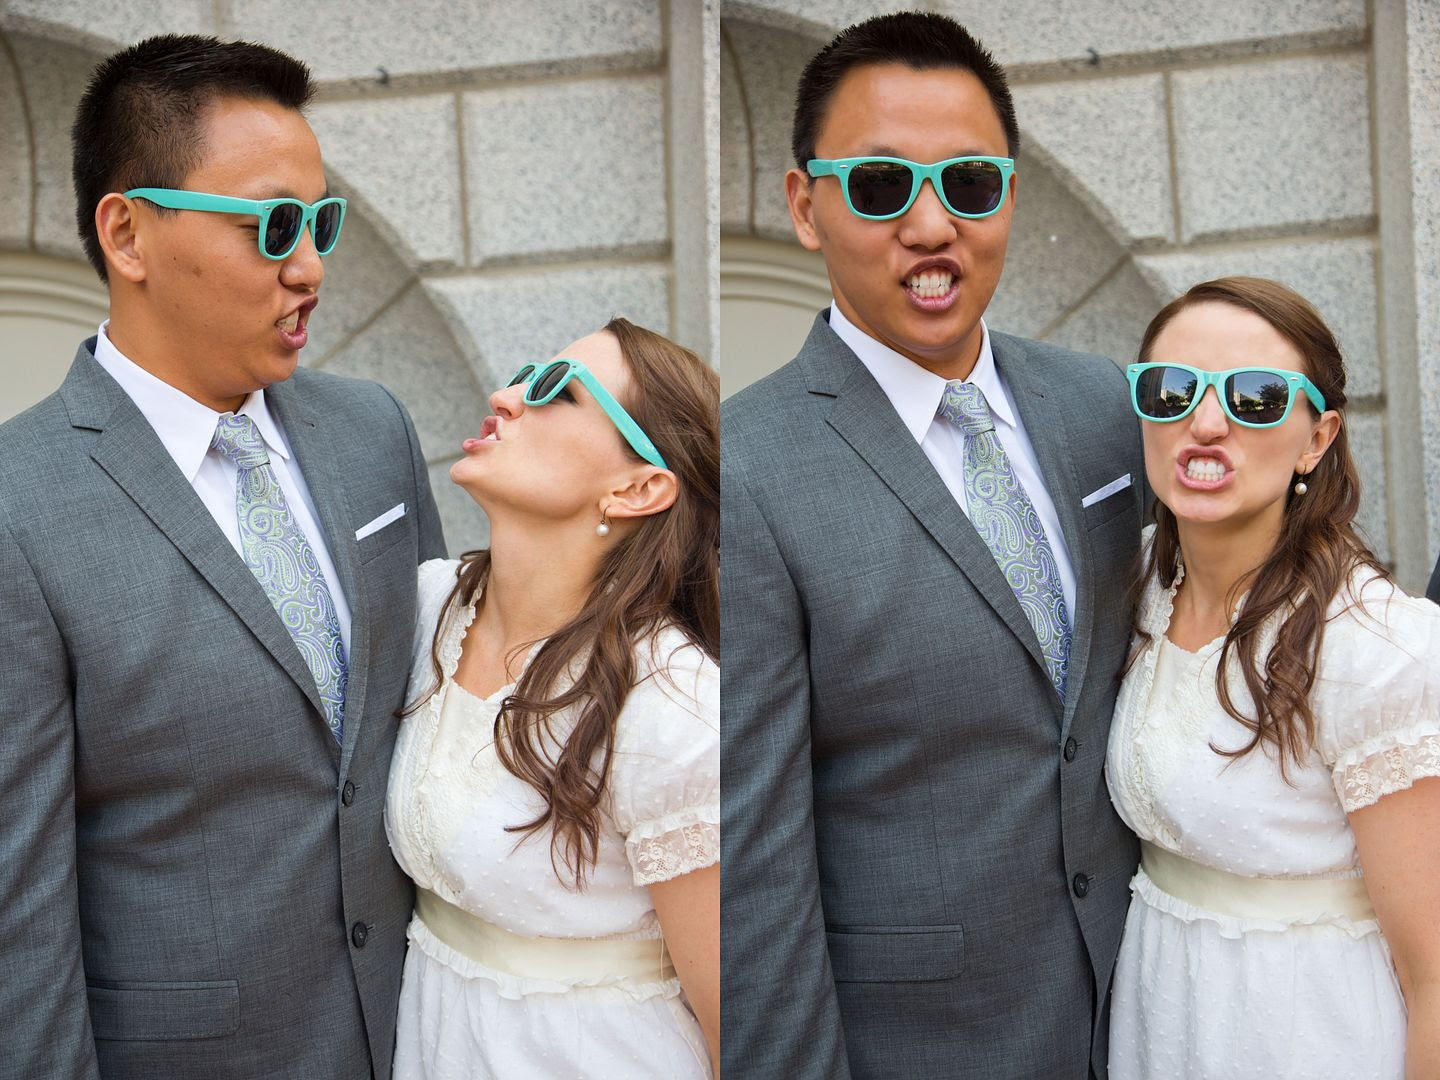 Joined Sunglasses Lips at Wedding photo JoinedSunglassesLips_zps908a46bb.jpg